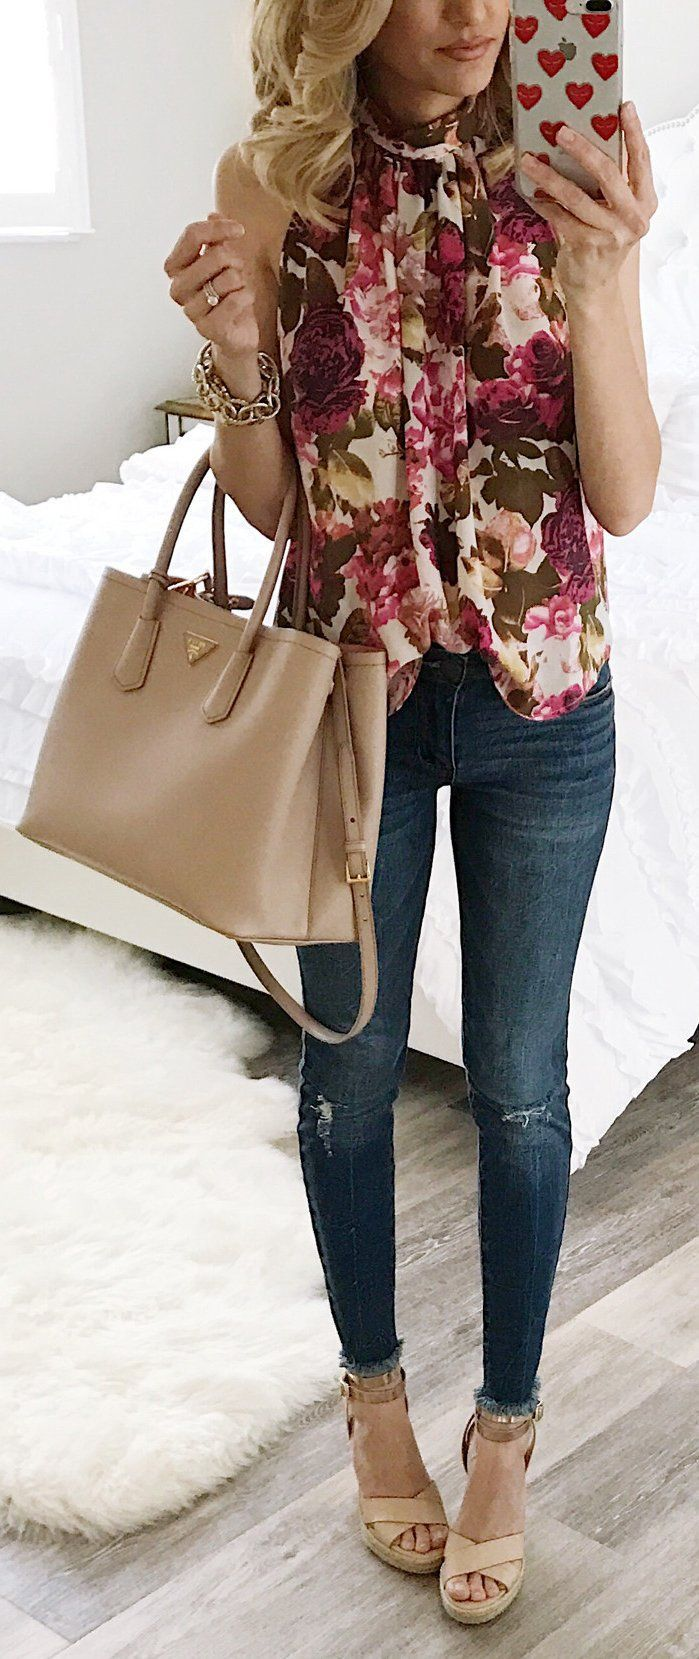 30 Flirty Outfits To Wear for Spring 30 - Outfit Ideas for Women